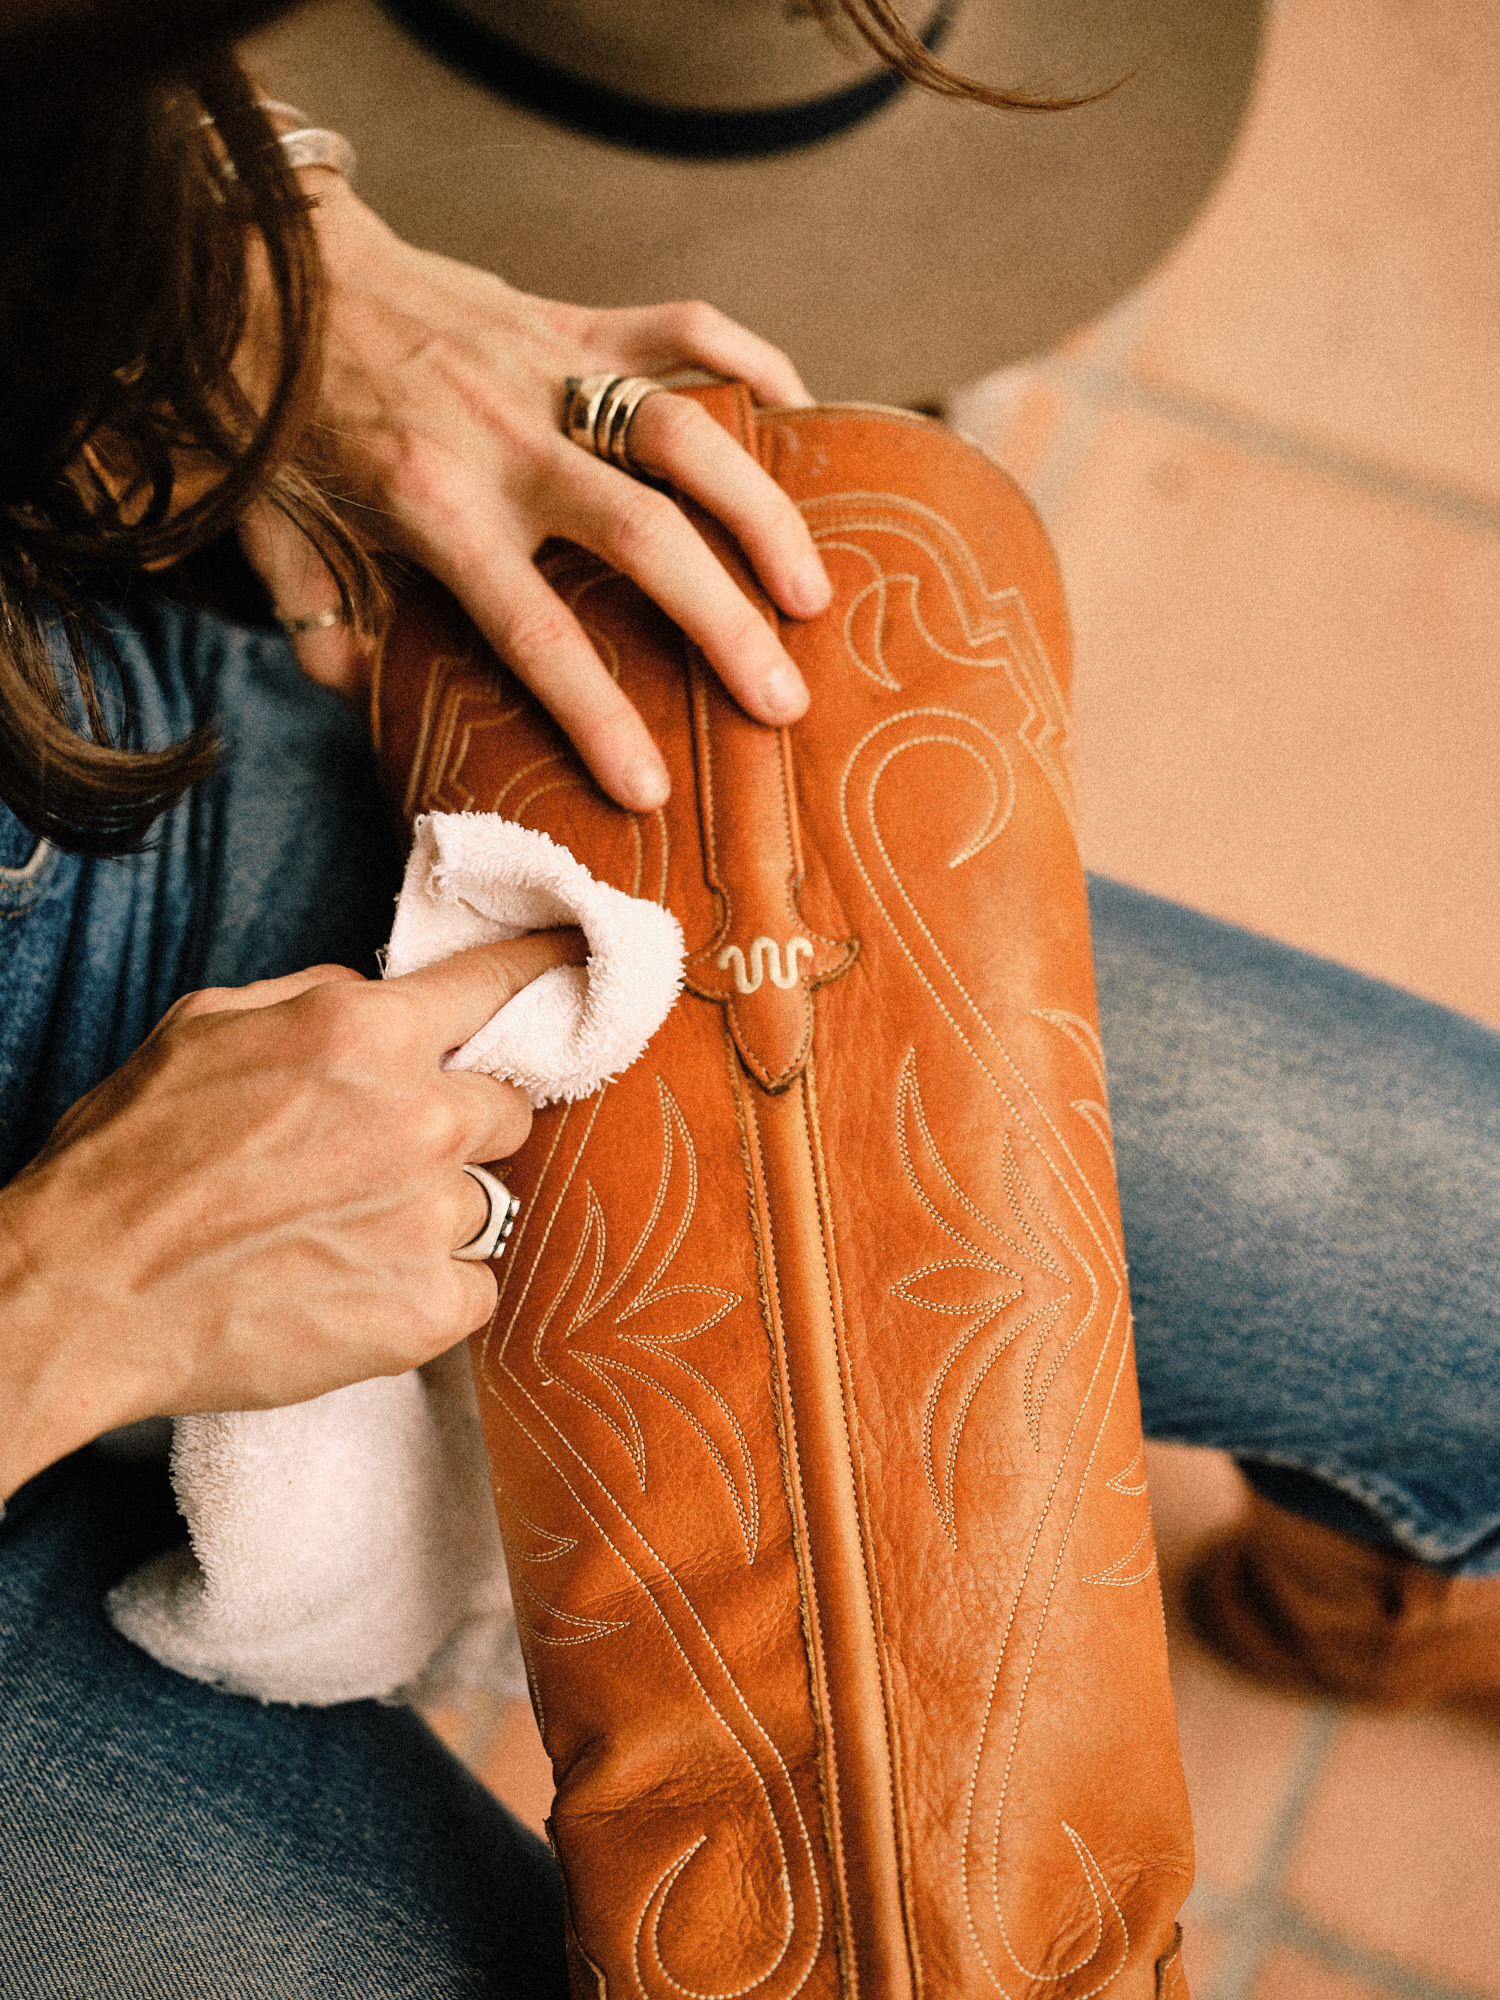 A Lifetime of Service: Leather Care & Conditioning